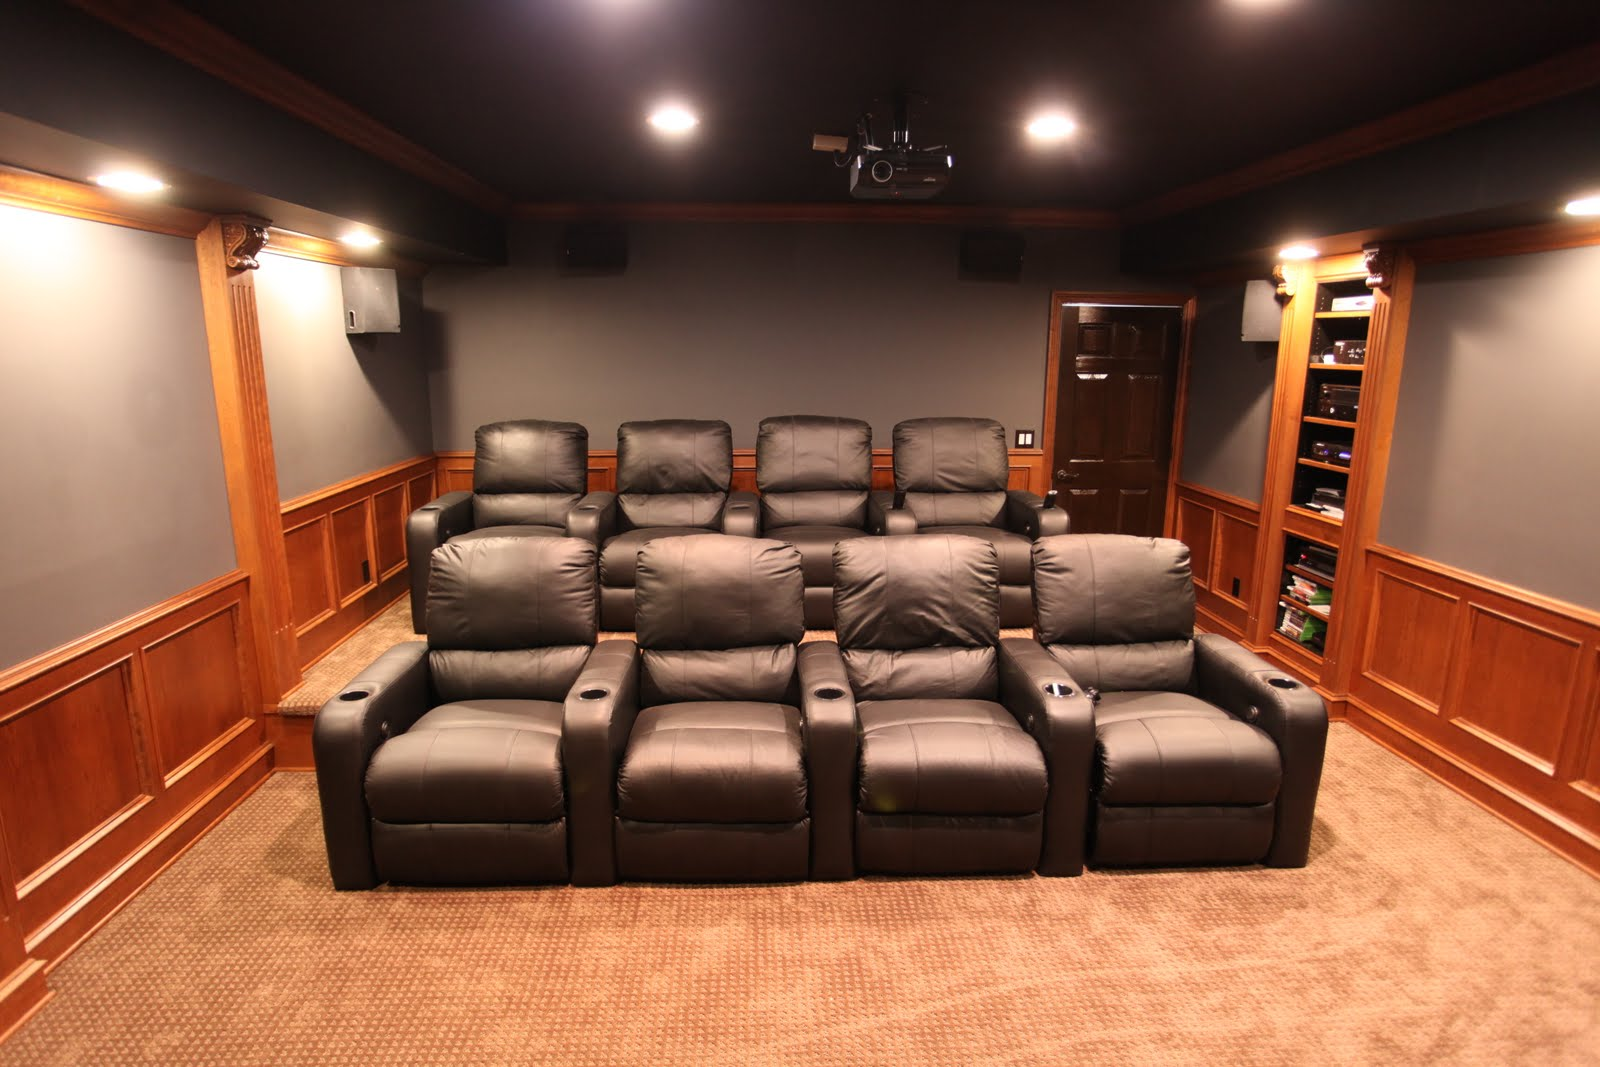 10 x 10 home theater room design and ideas for Home theatre ideas design